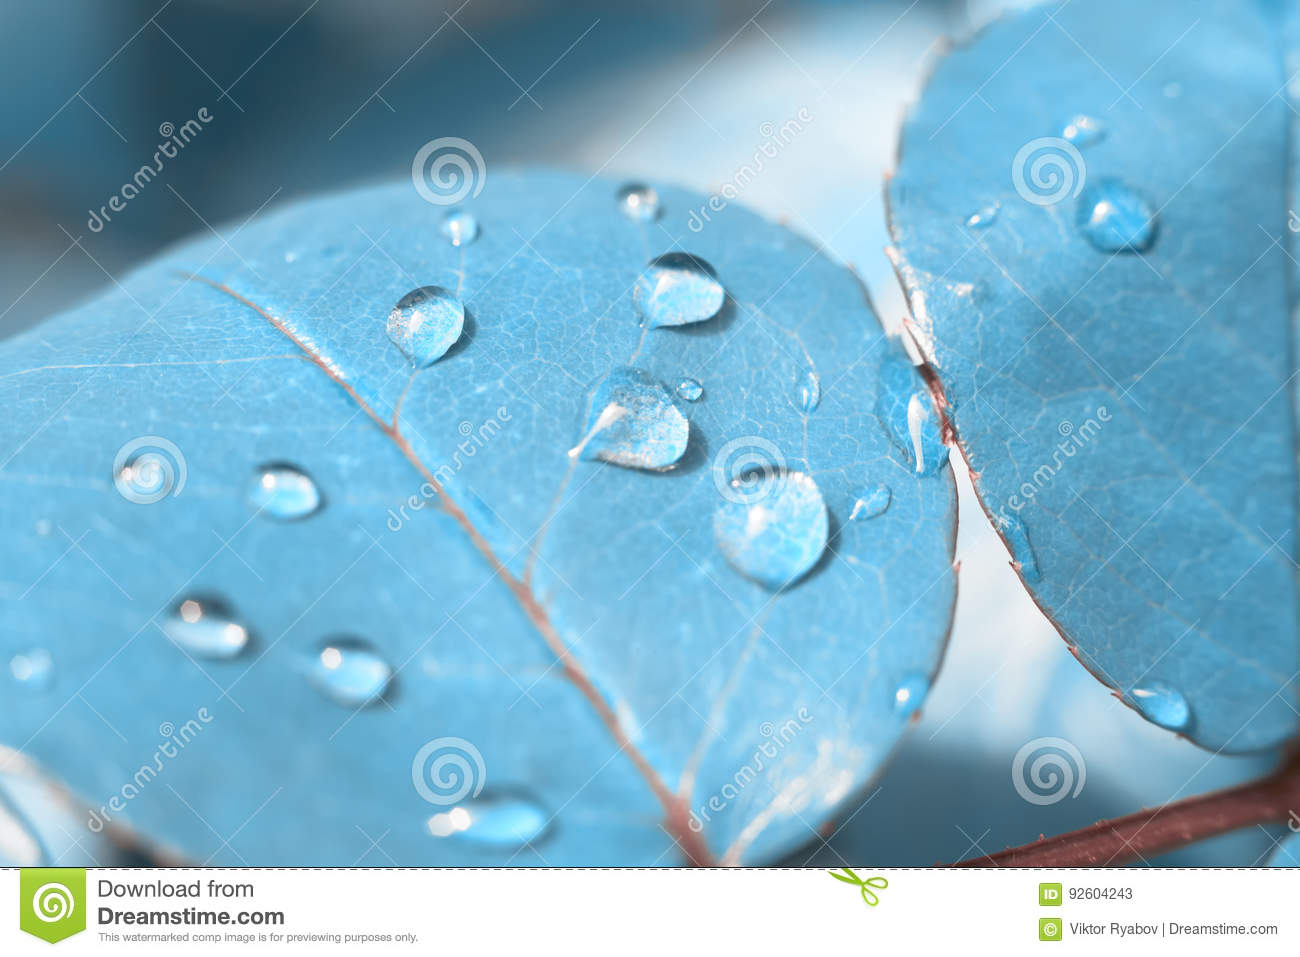 leaf of roses blue wallpaper texture abstraction concept stock